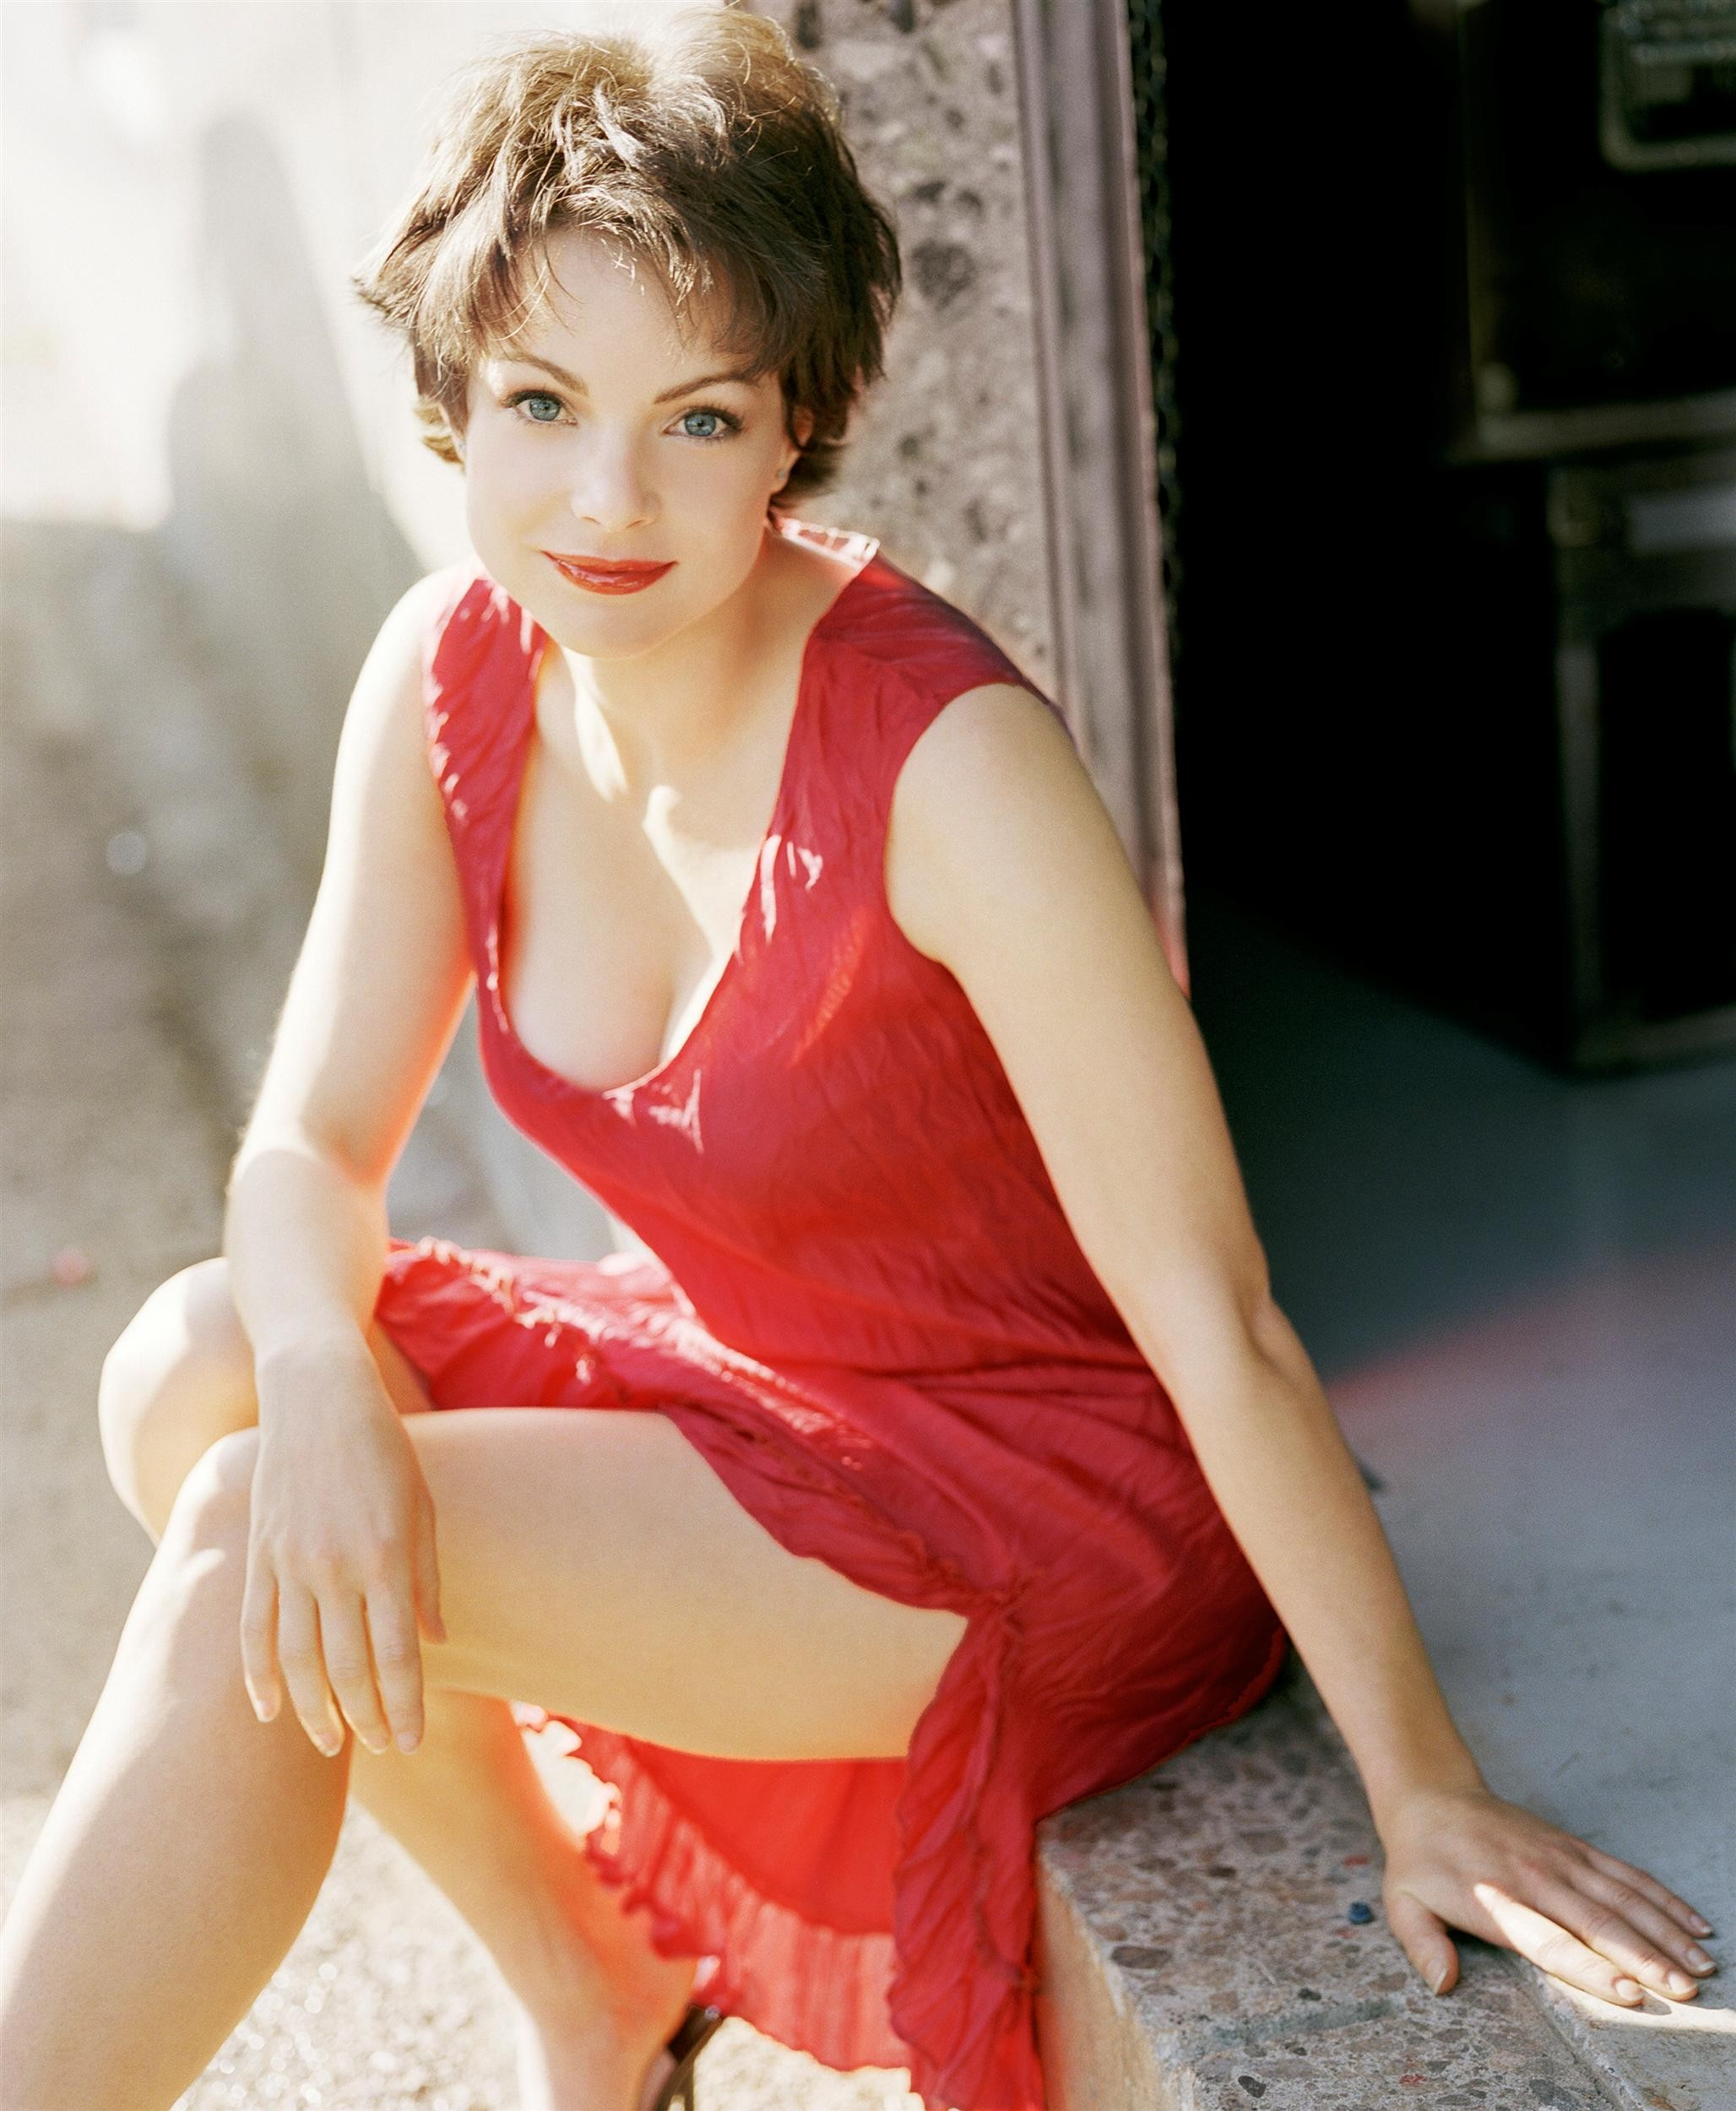 Kimberly Williams-Paisley HD Wallpapers for desktop download